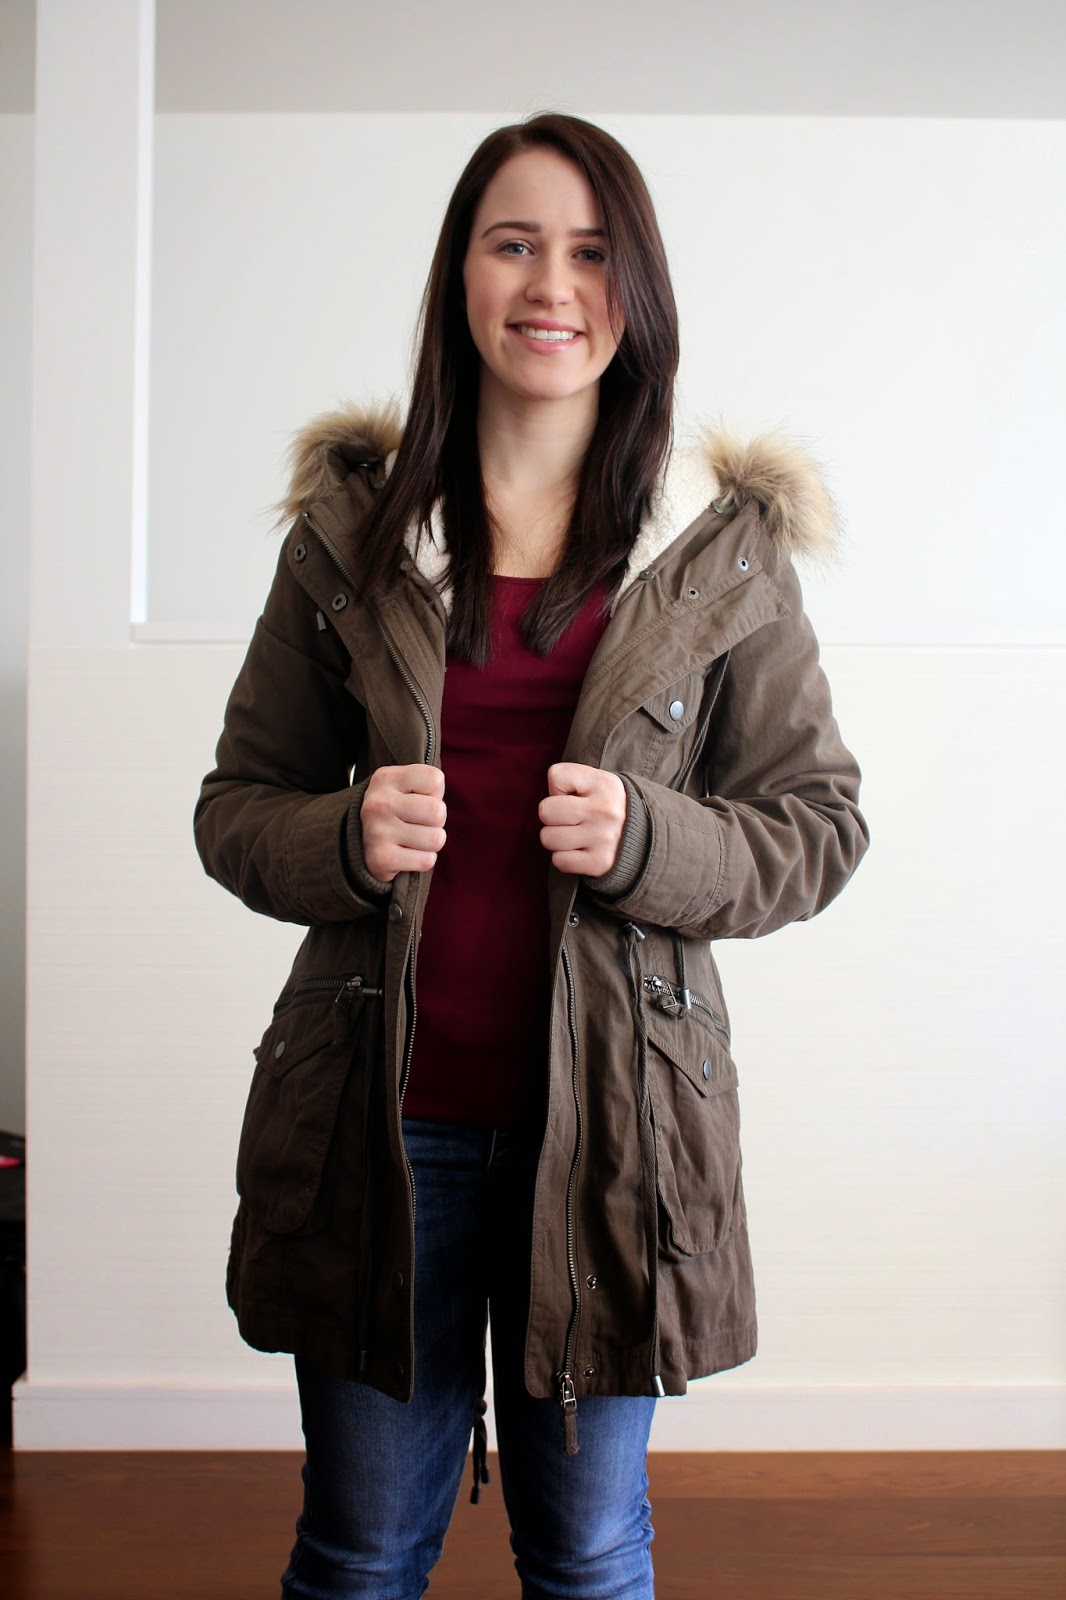 Light wash denim jeans, wine coloured long sleeved top, khaki wool lined jacket, brown combat boots, winter outfit, casual winter outfit, everyday outfit, petite girl outfit, combat boots and jeans, keeping warm in winter